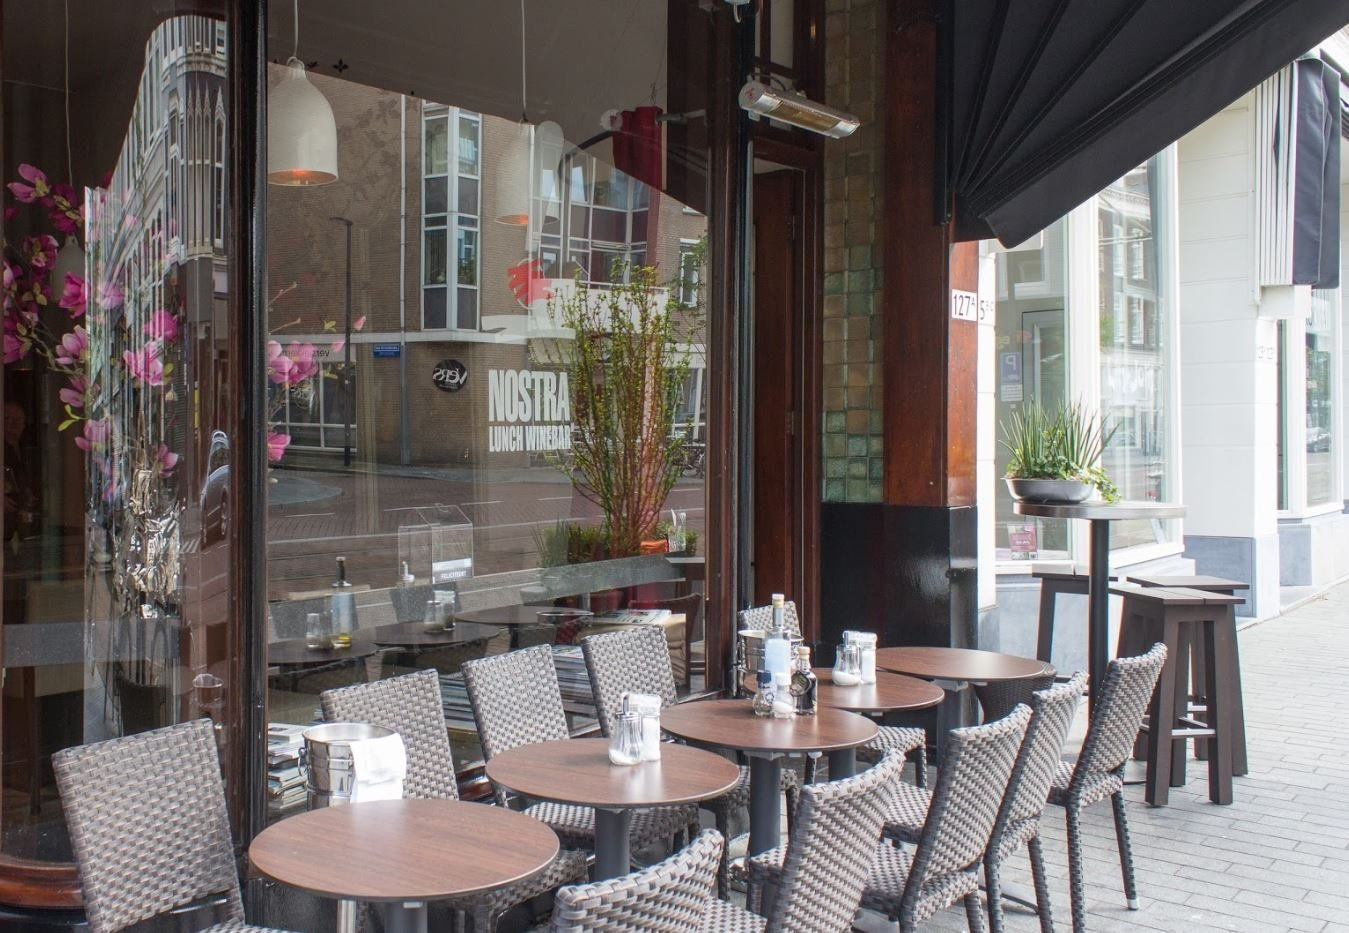 nostra-lunch-en-winebar-rotterdam-10